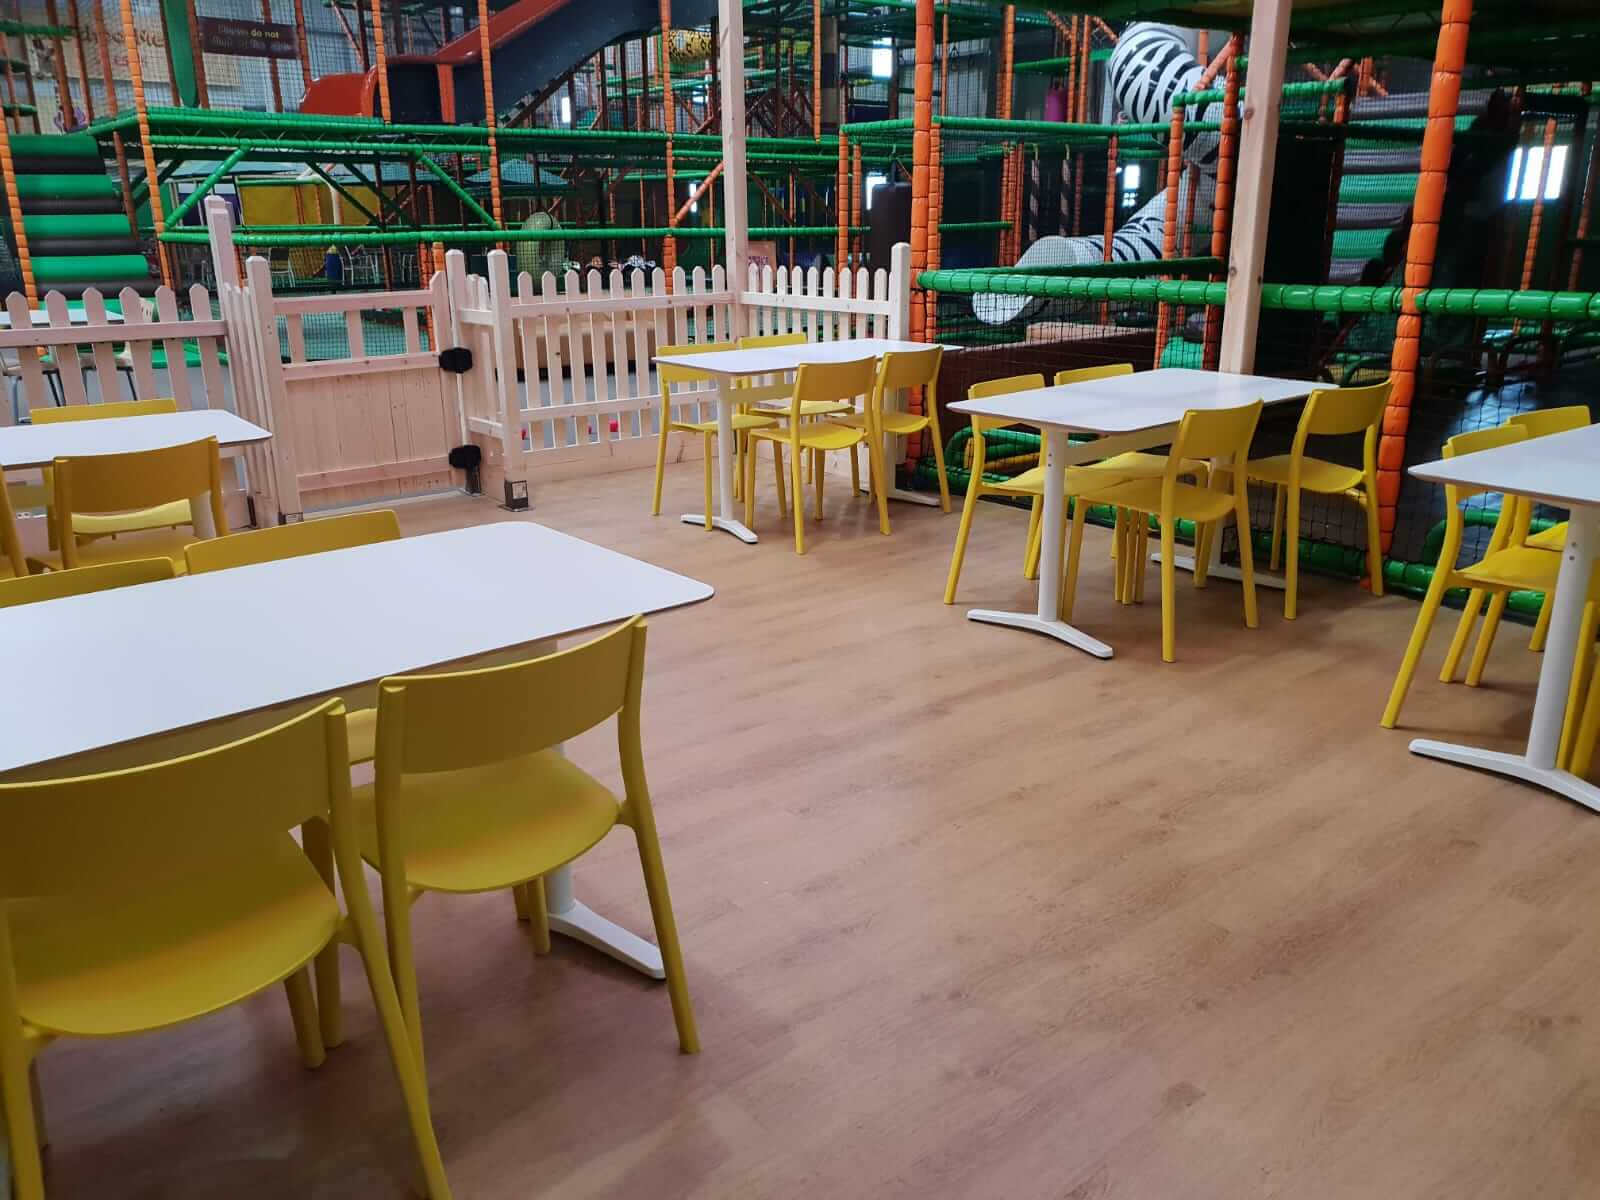 Seating area for parents to relax